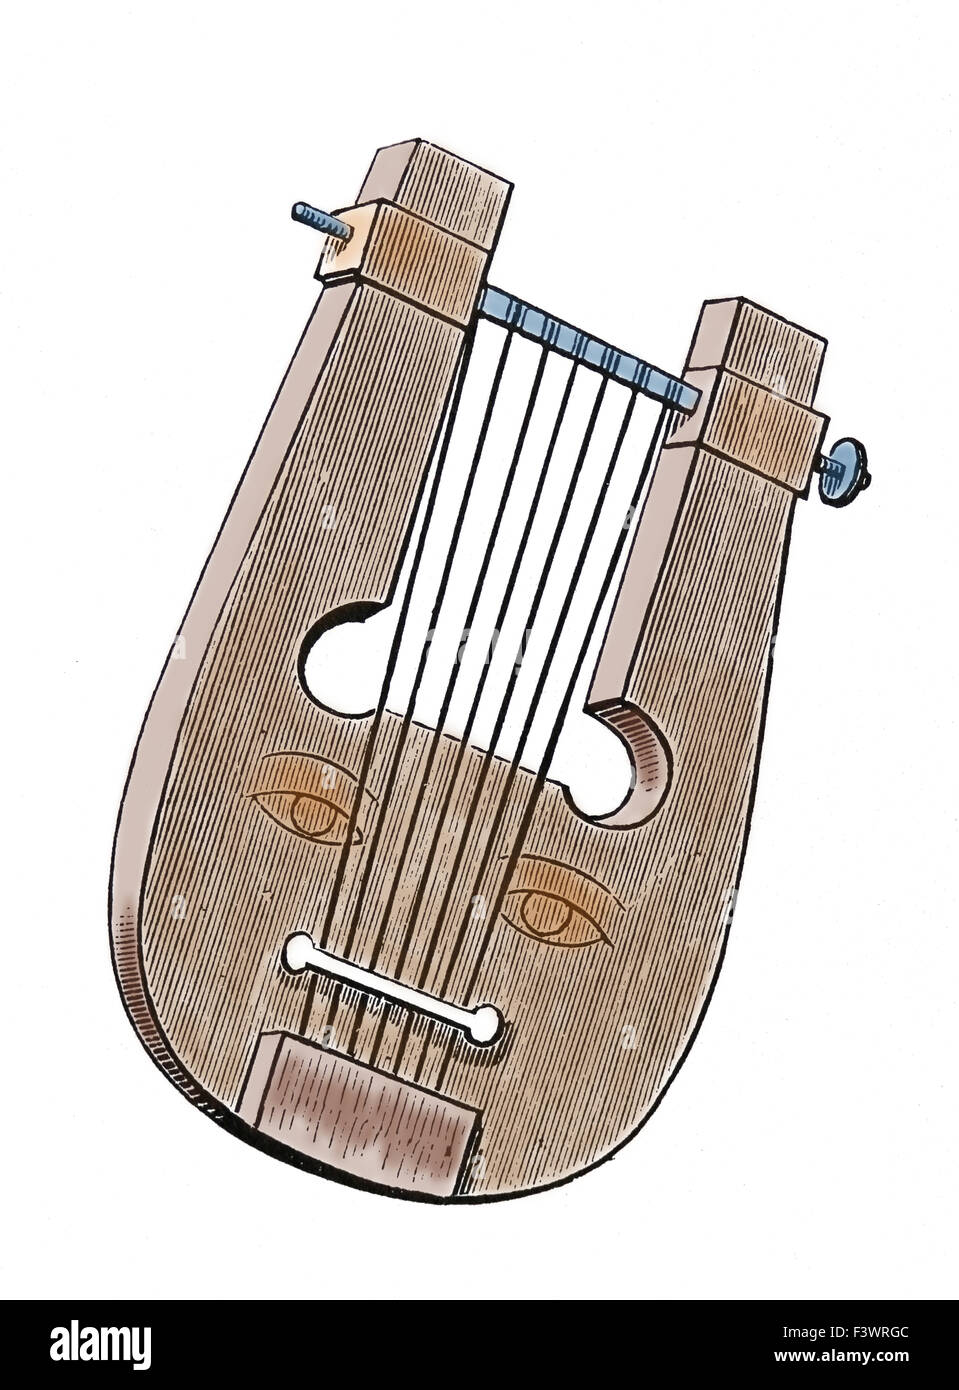 Ancient Greek musical instrument. Lyre. Engraving. 19th century. Color. - Stock Image